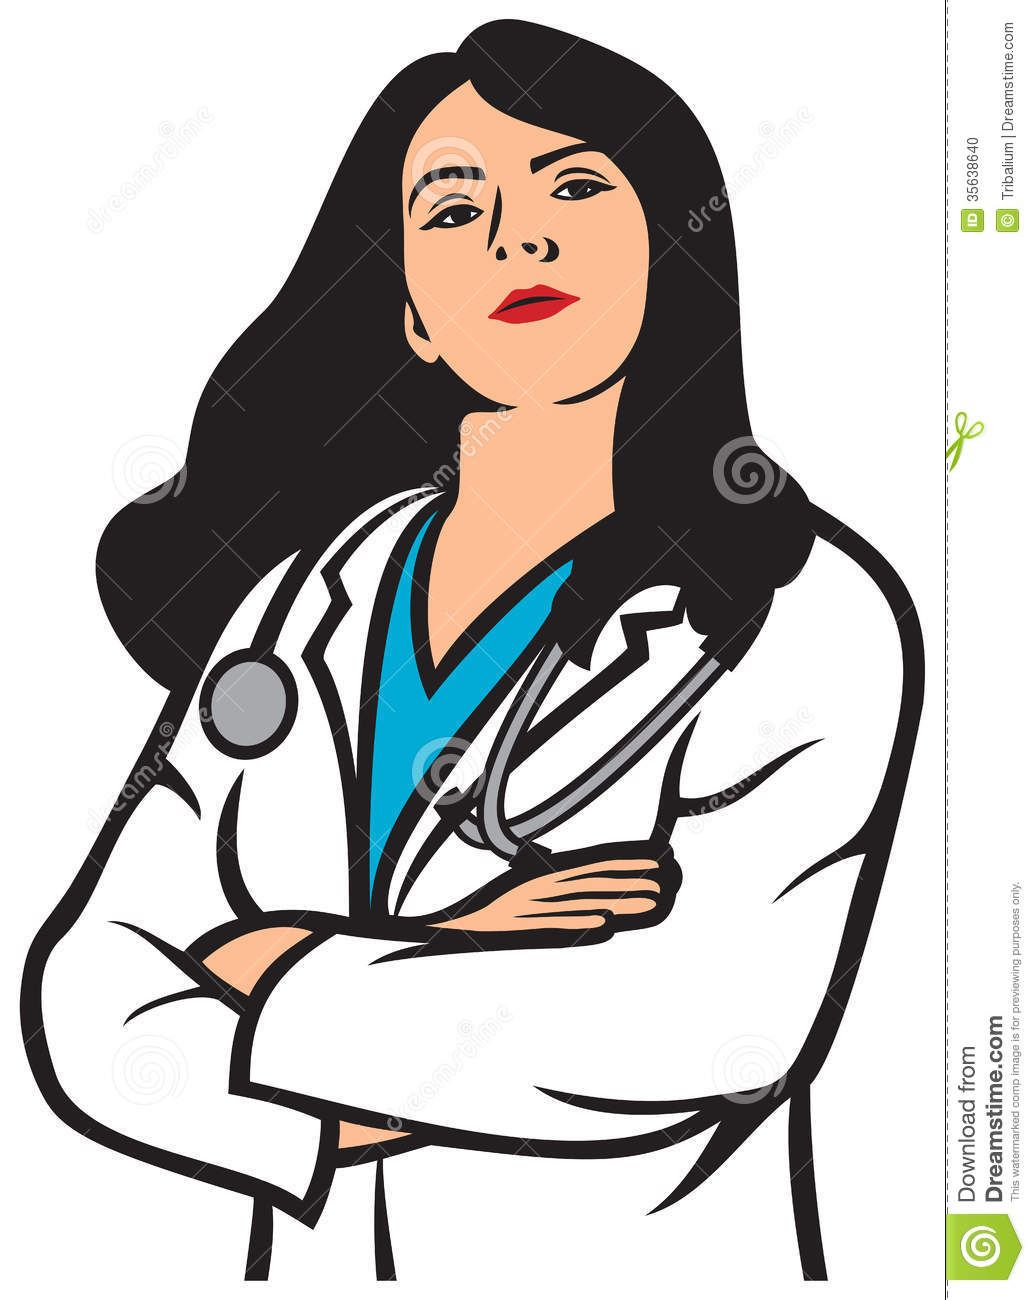 1035x1300 Women Doctors Clipart Doctor Clip Art Woman Doctor Sign